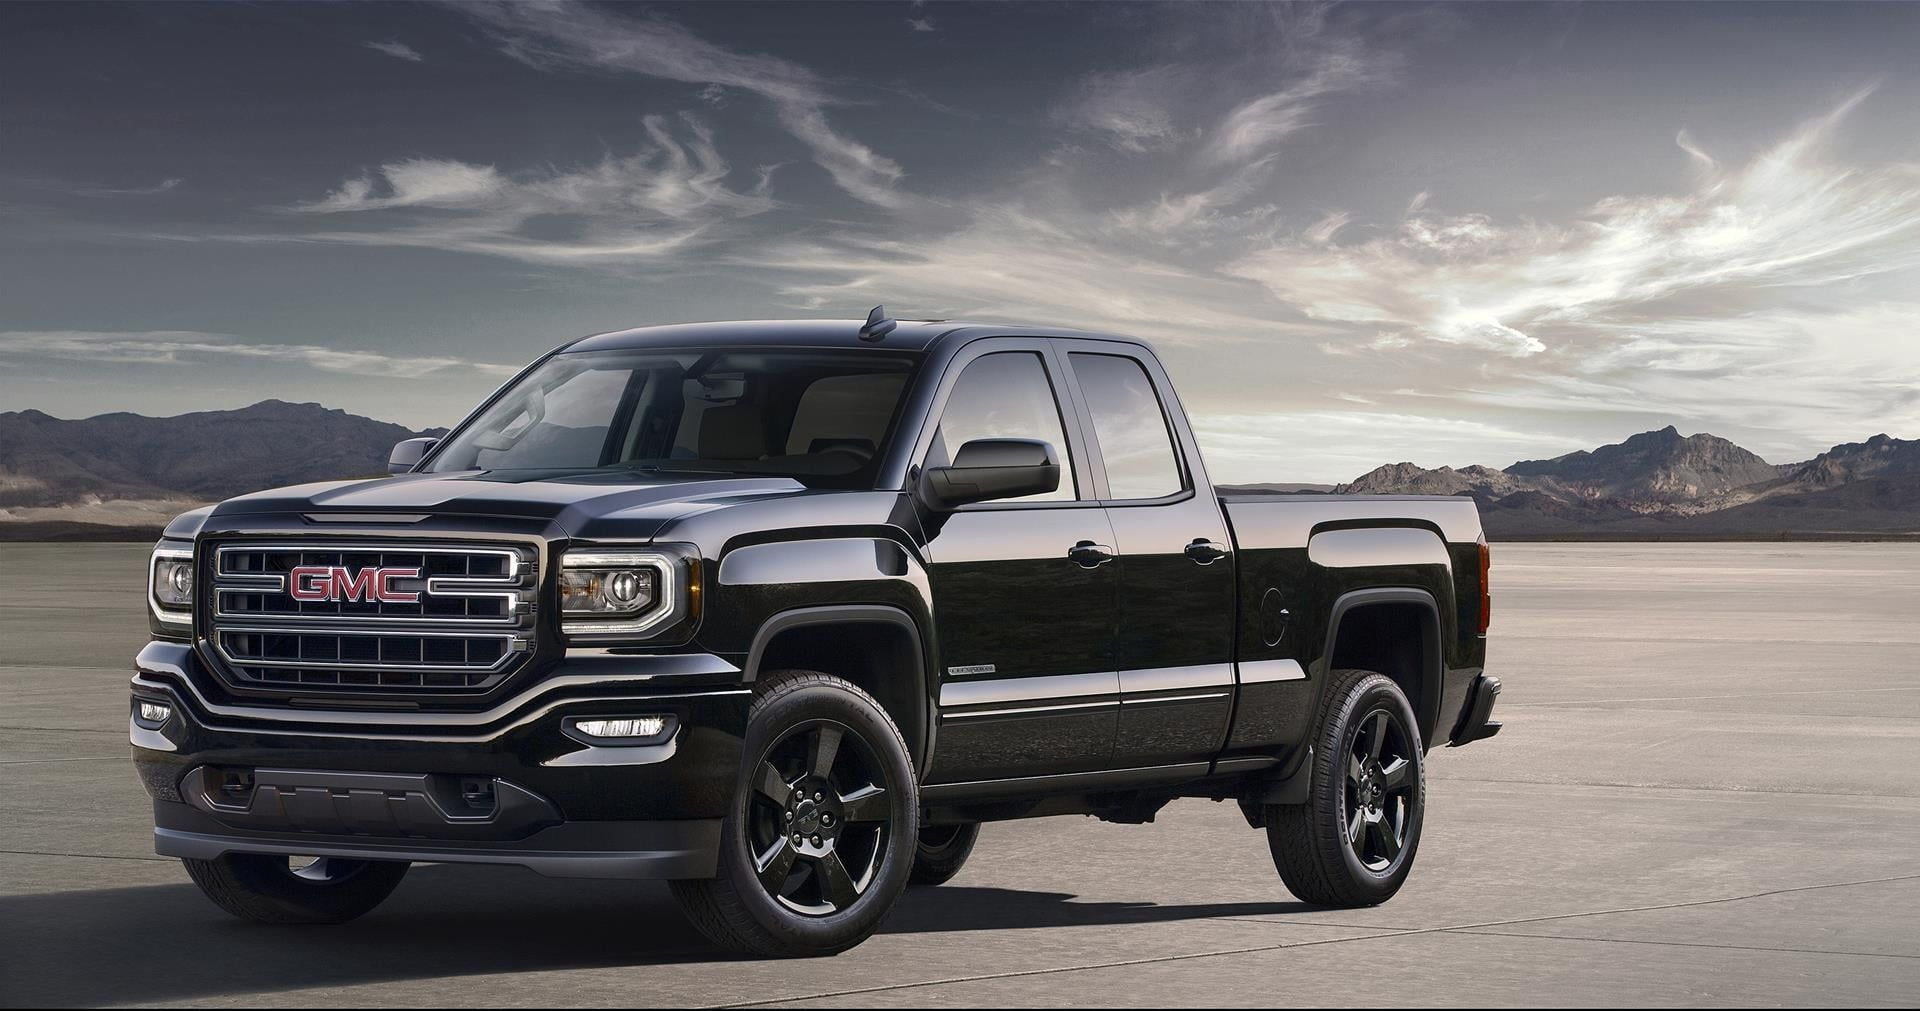 22 Gmc Sierra Wallpapers Hd High Quality 2017 Gmc Sierra 1500 Gmc Sierra Gmc Sierra 1500